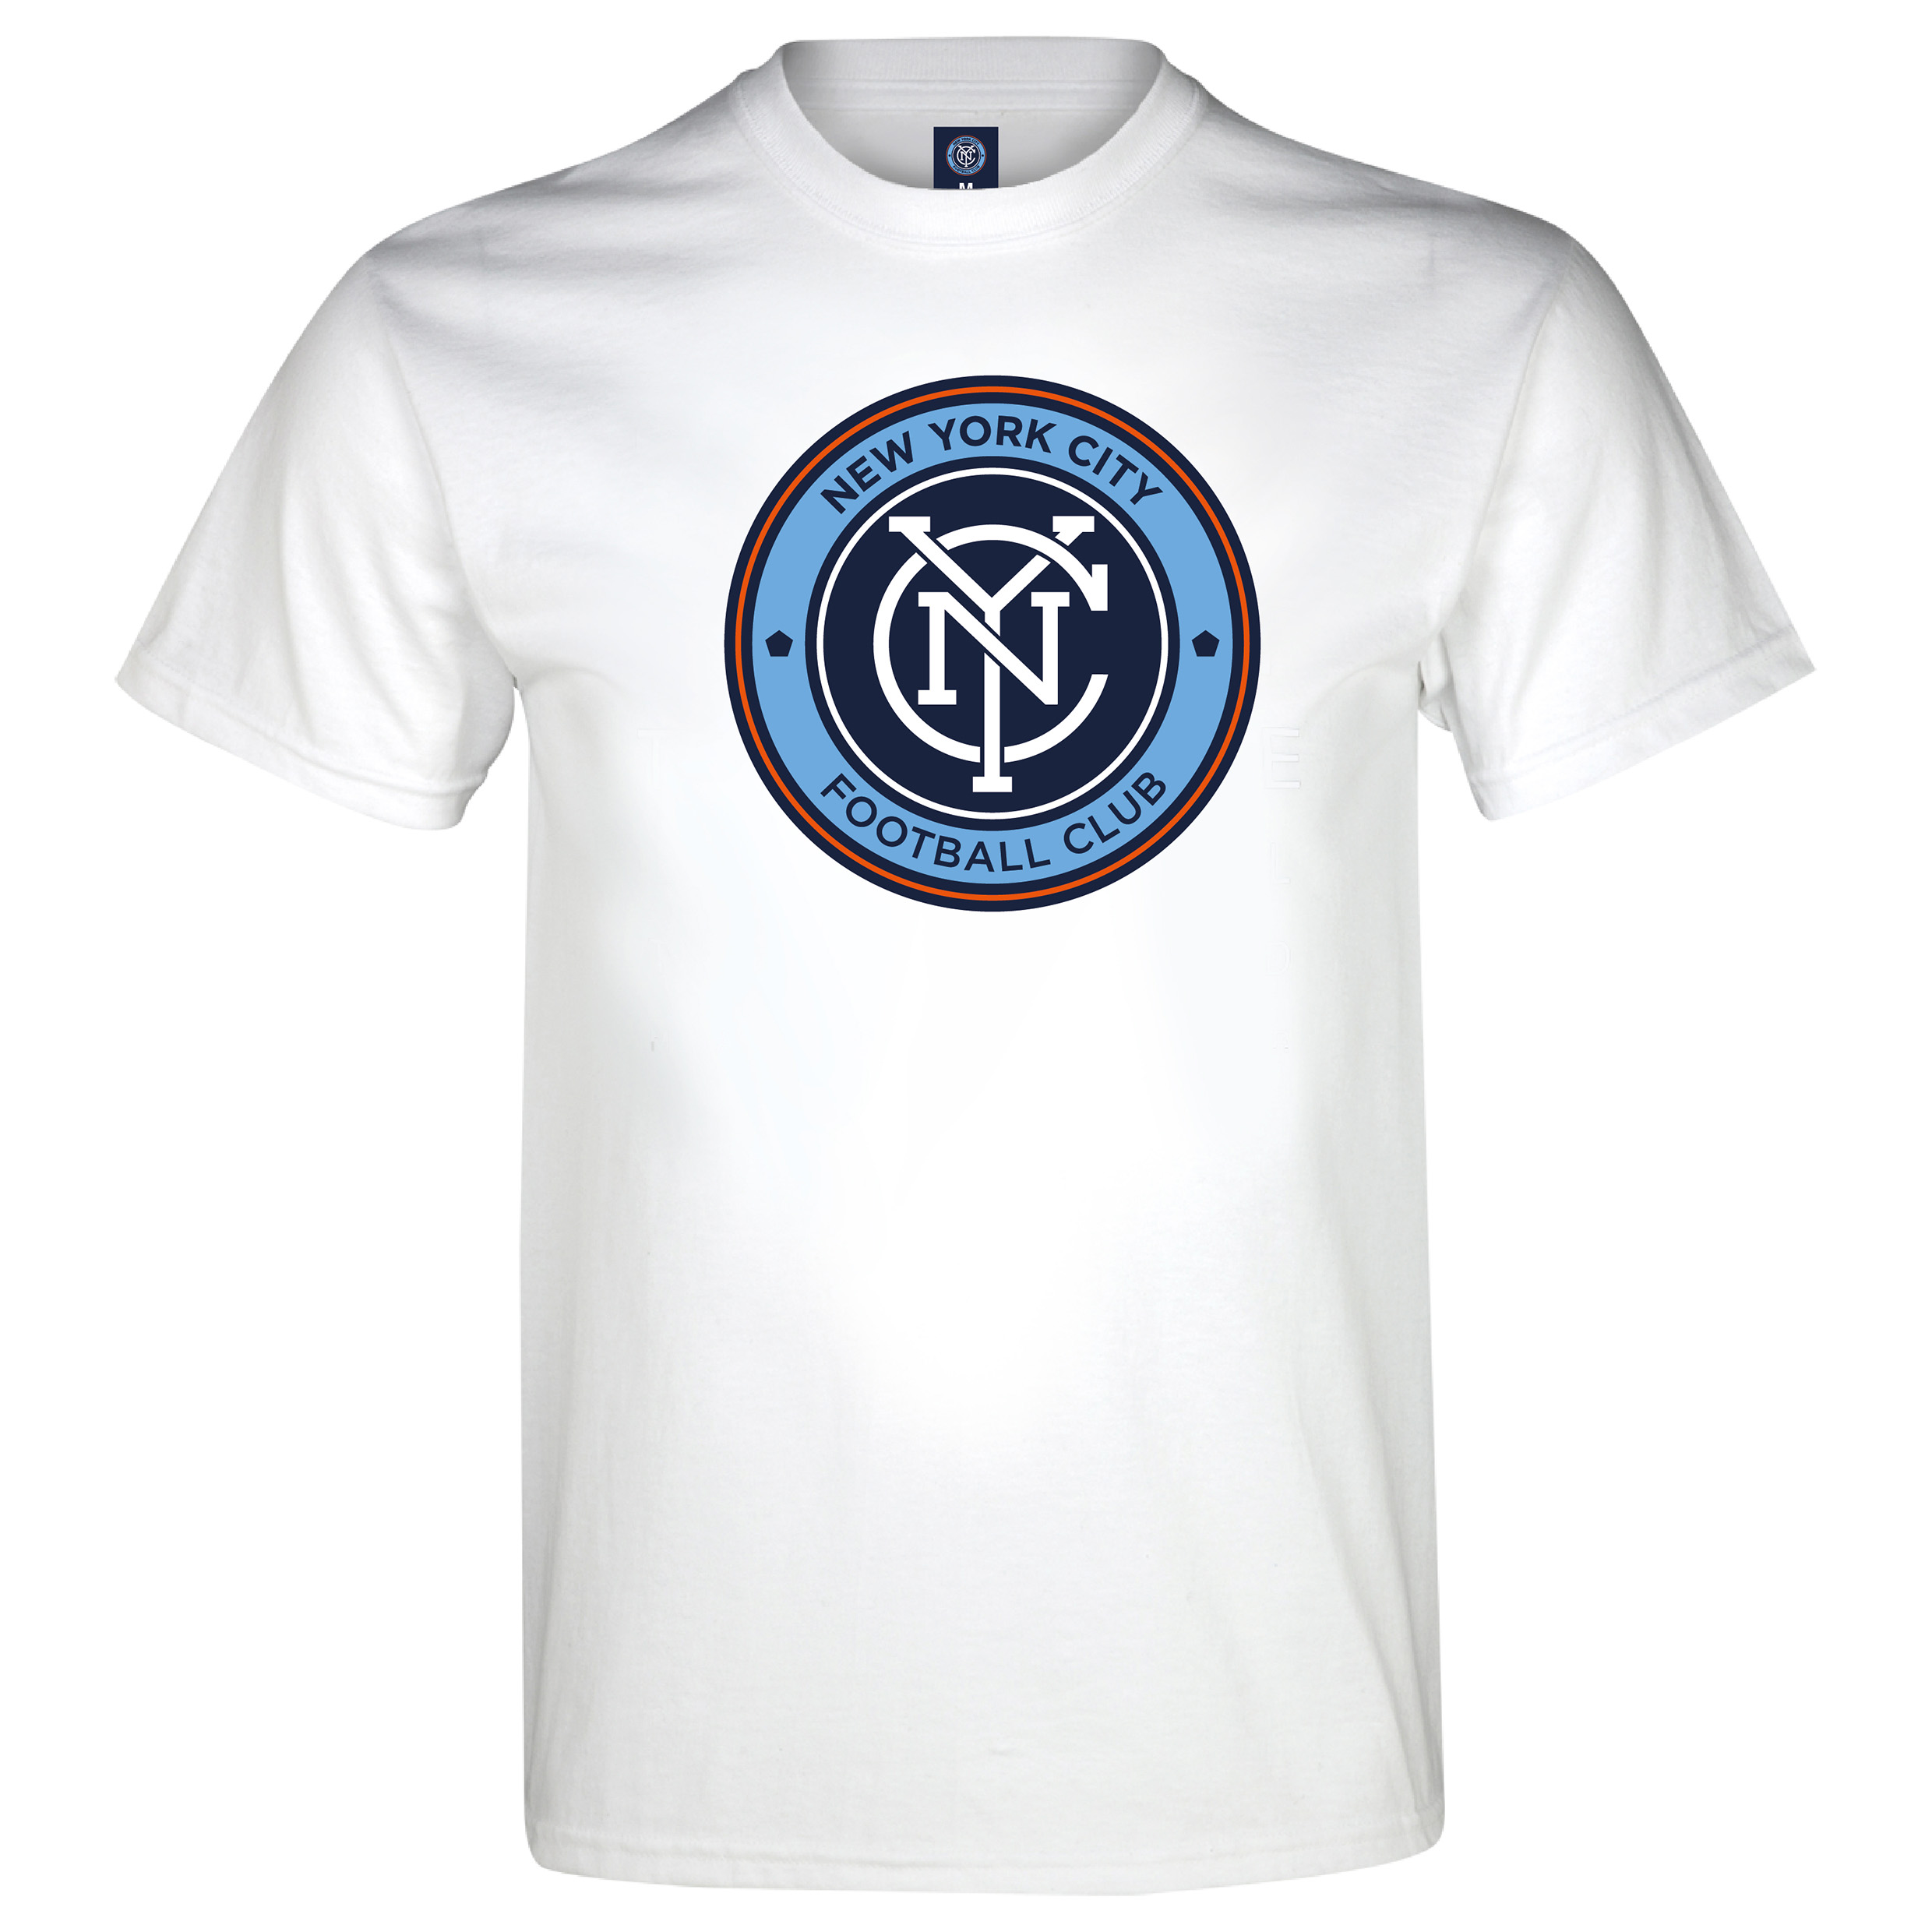 Manchester City New York City T-Shirt - White - Mens